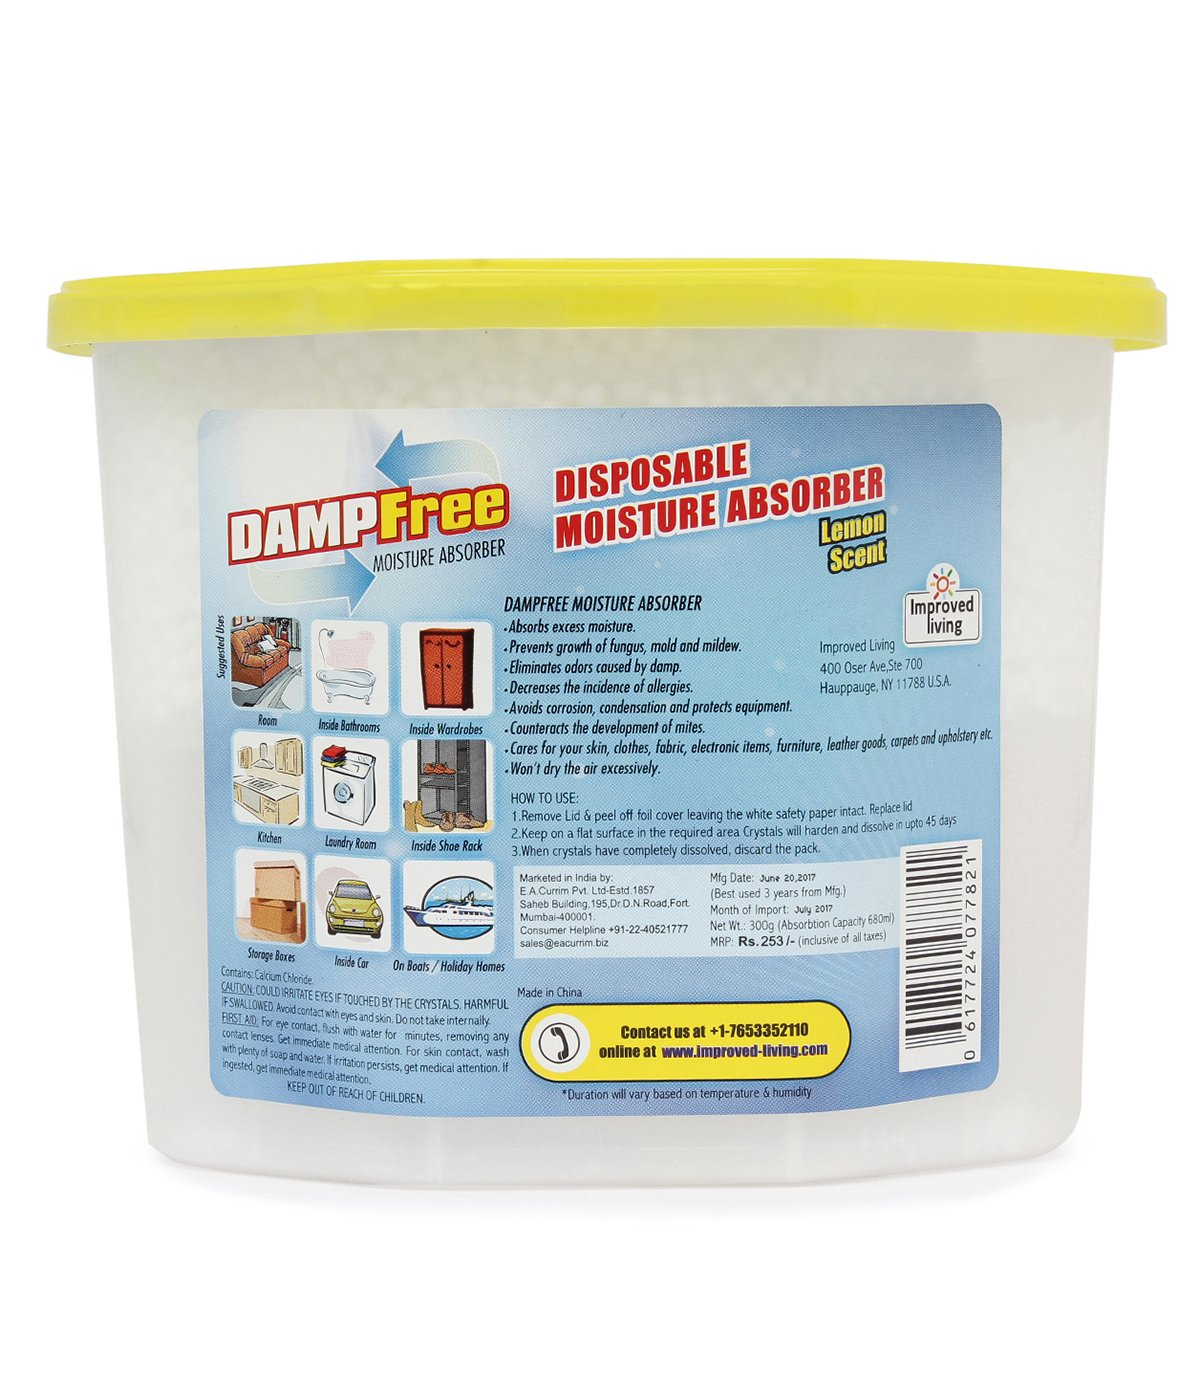 Damp free Disposable Moisture Absorber - 300g: Amazon.in: Industrial ...